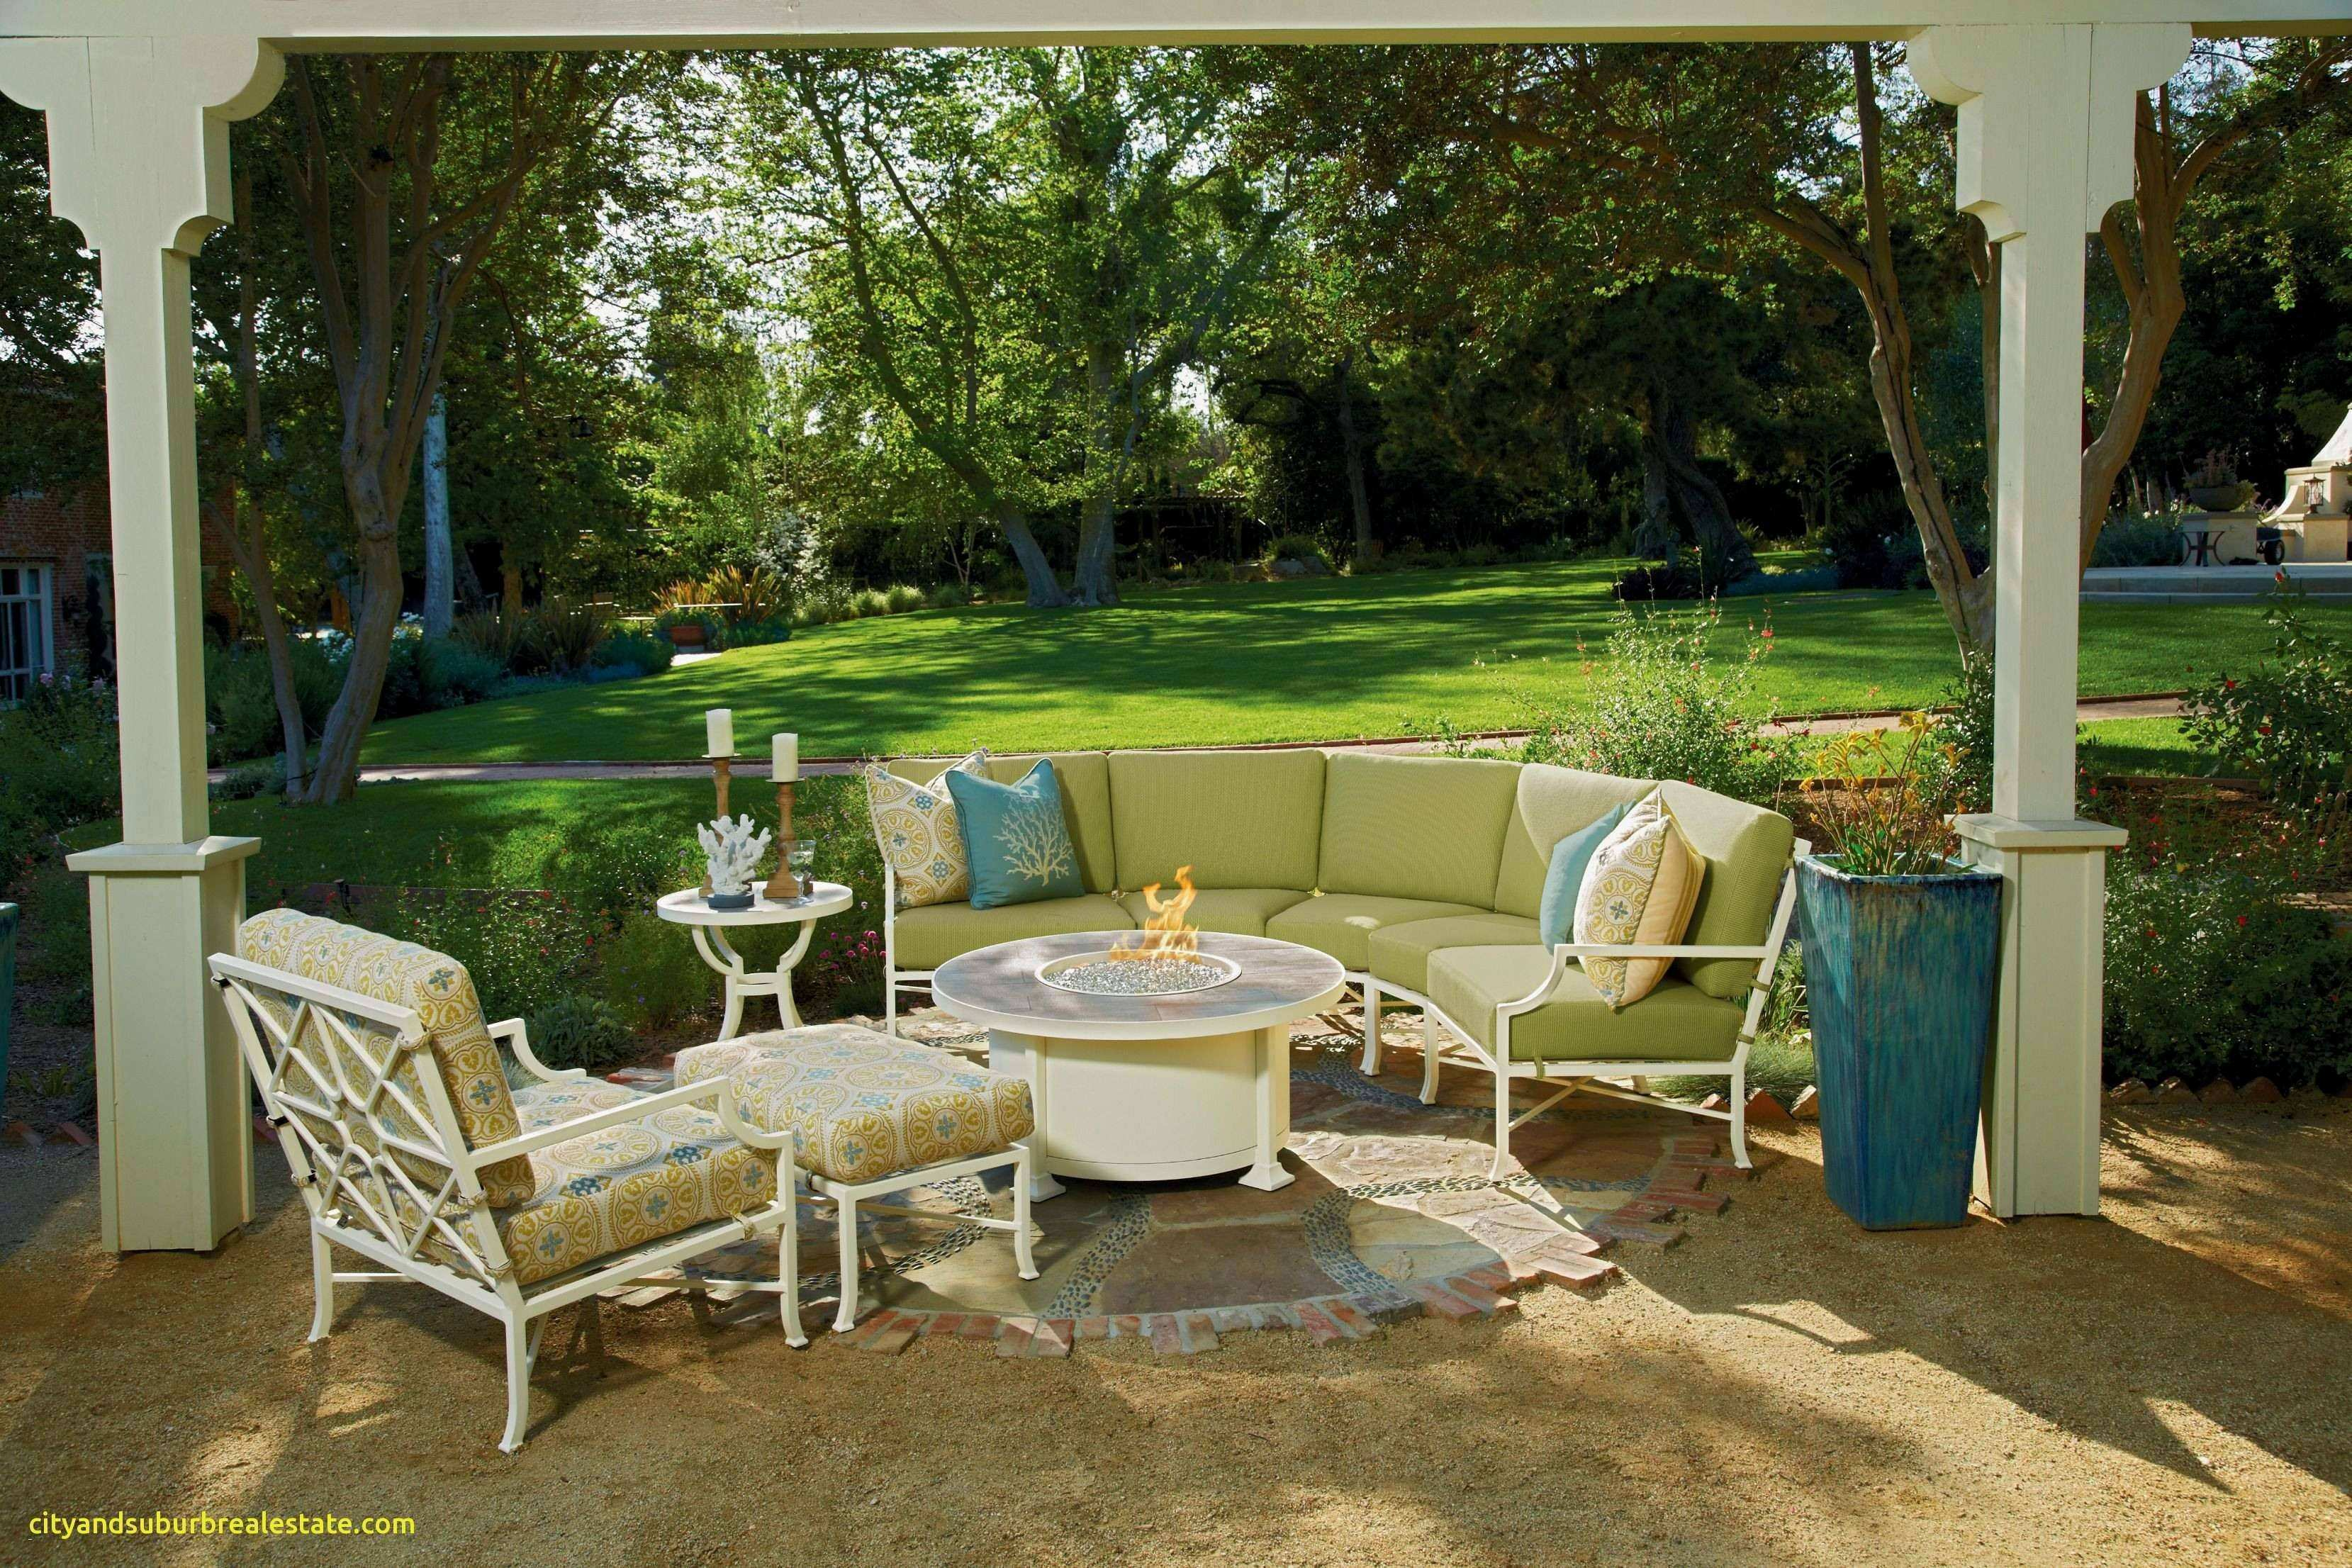 Landscape Design Ideas for Backyards and Yards Part 2